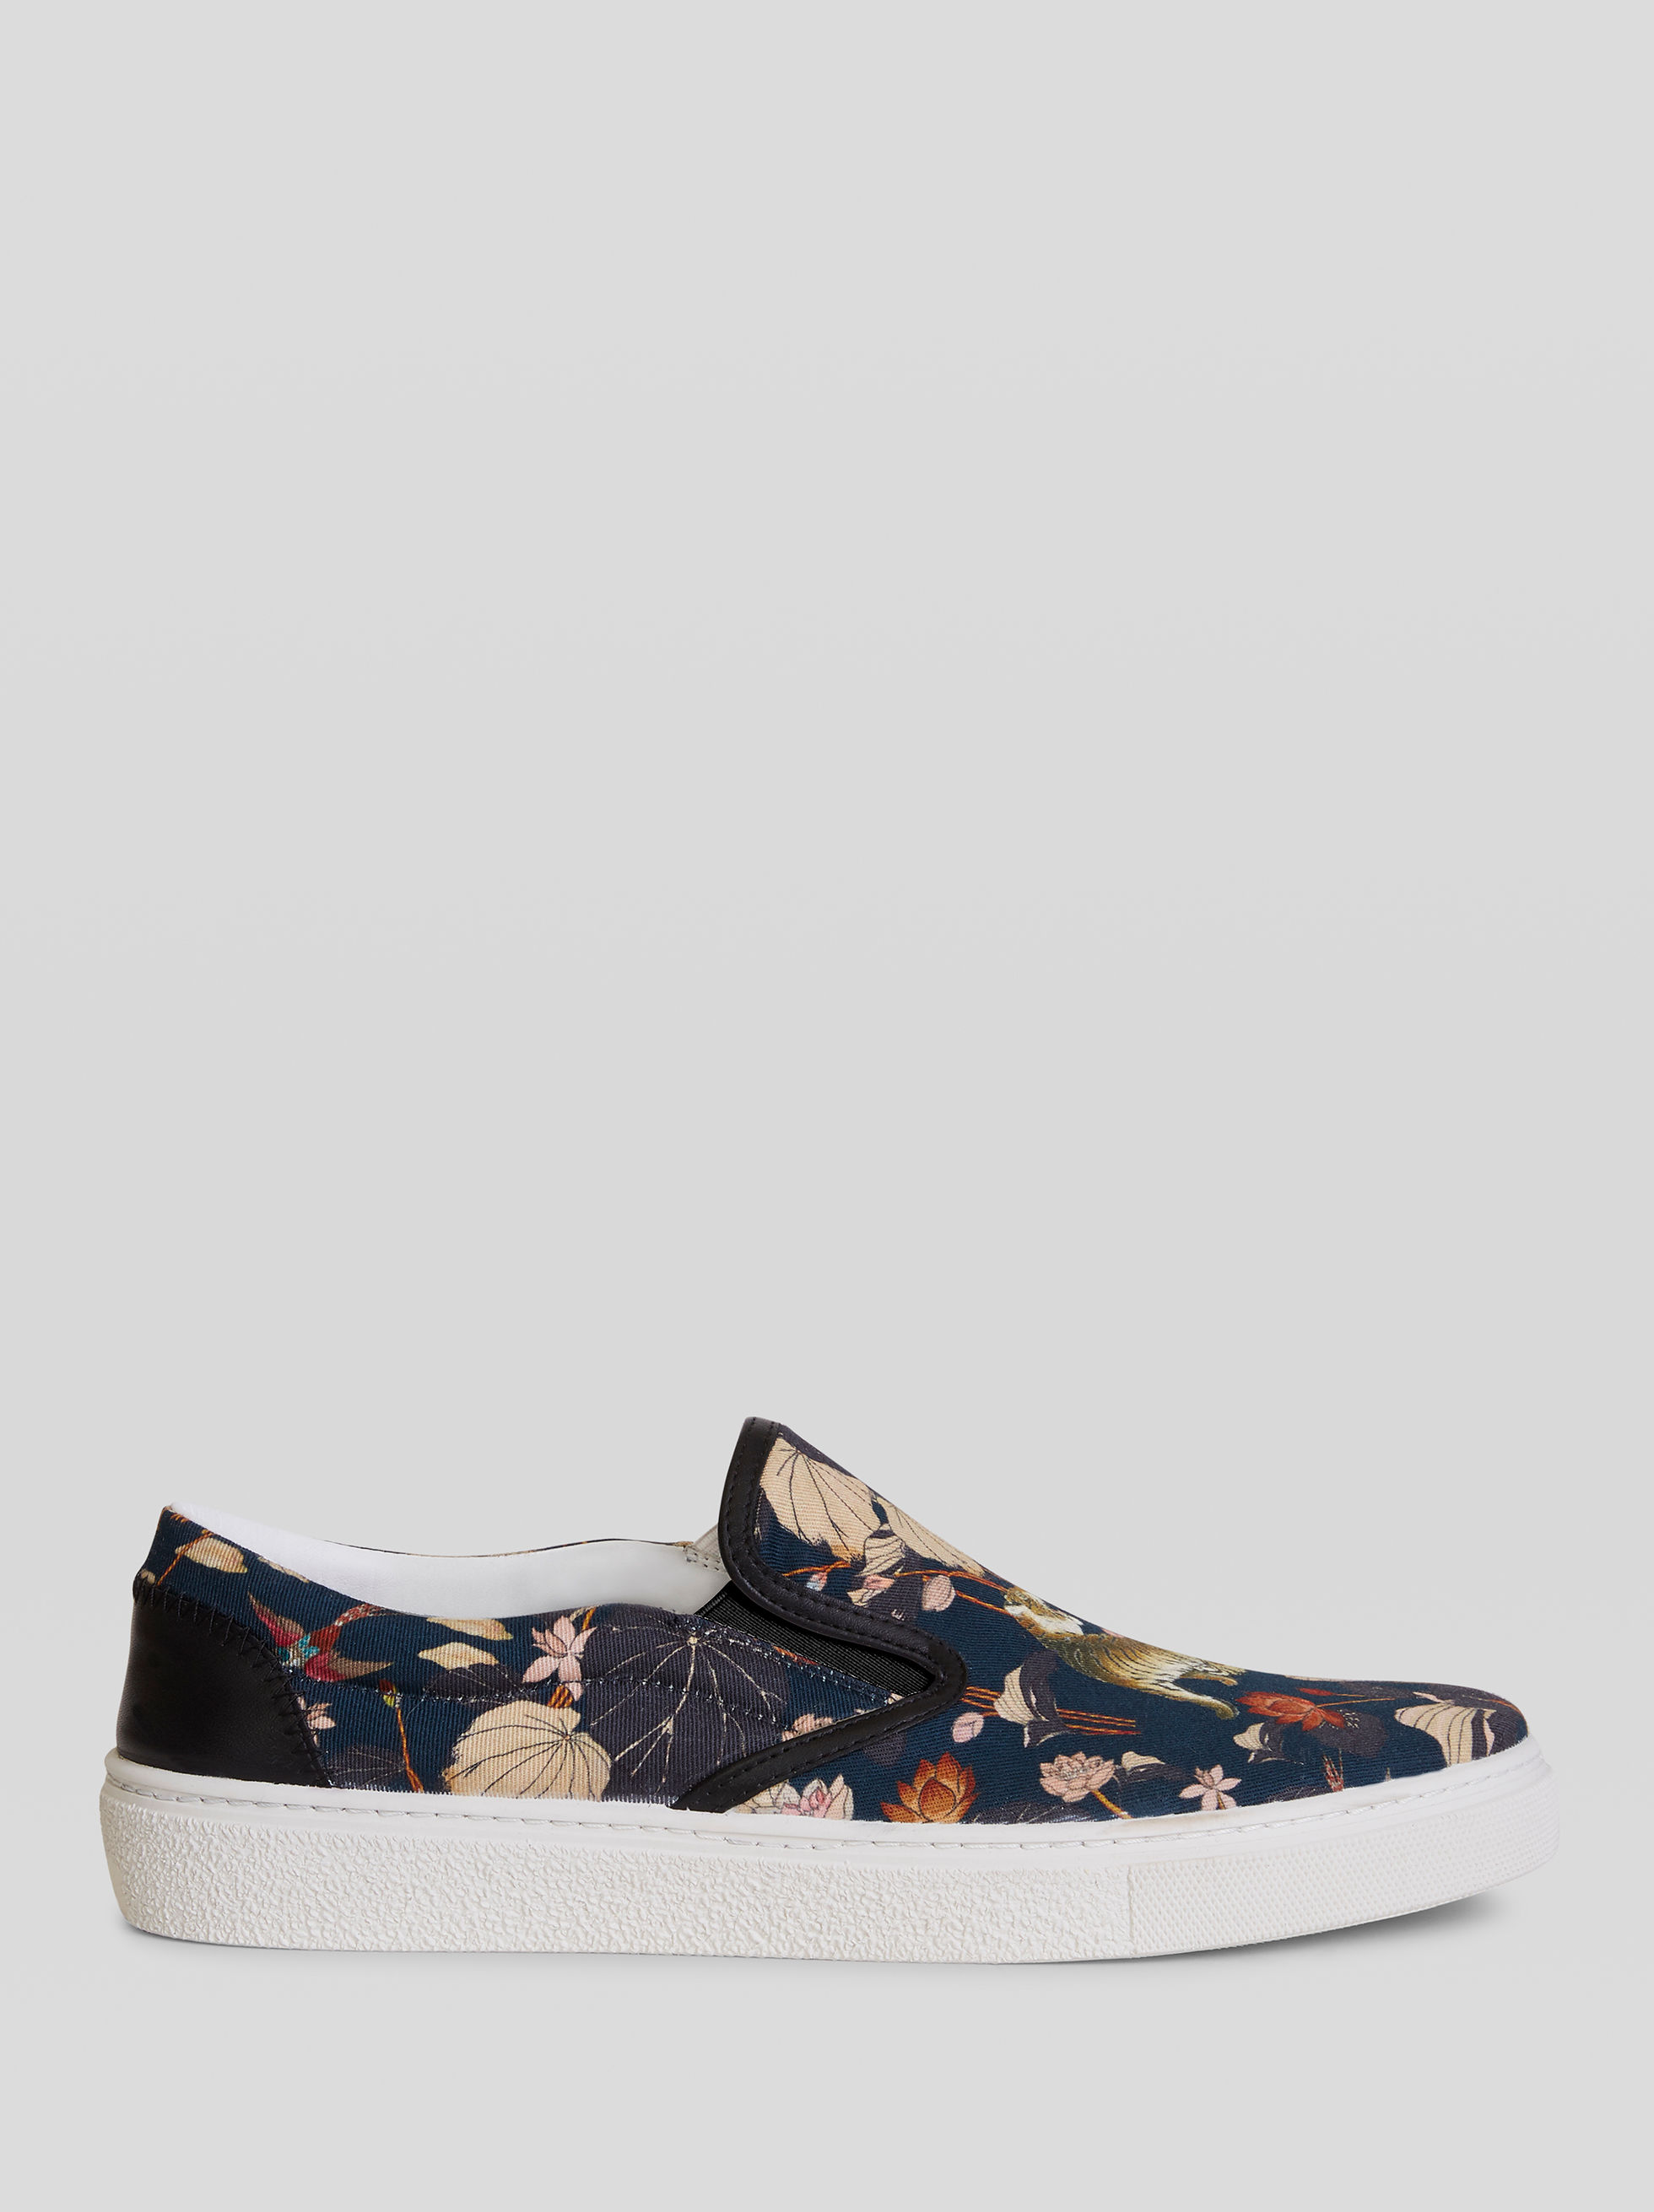 TIGER AND WATER LILY PRINT SLIP-ON SNEAKERS